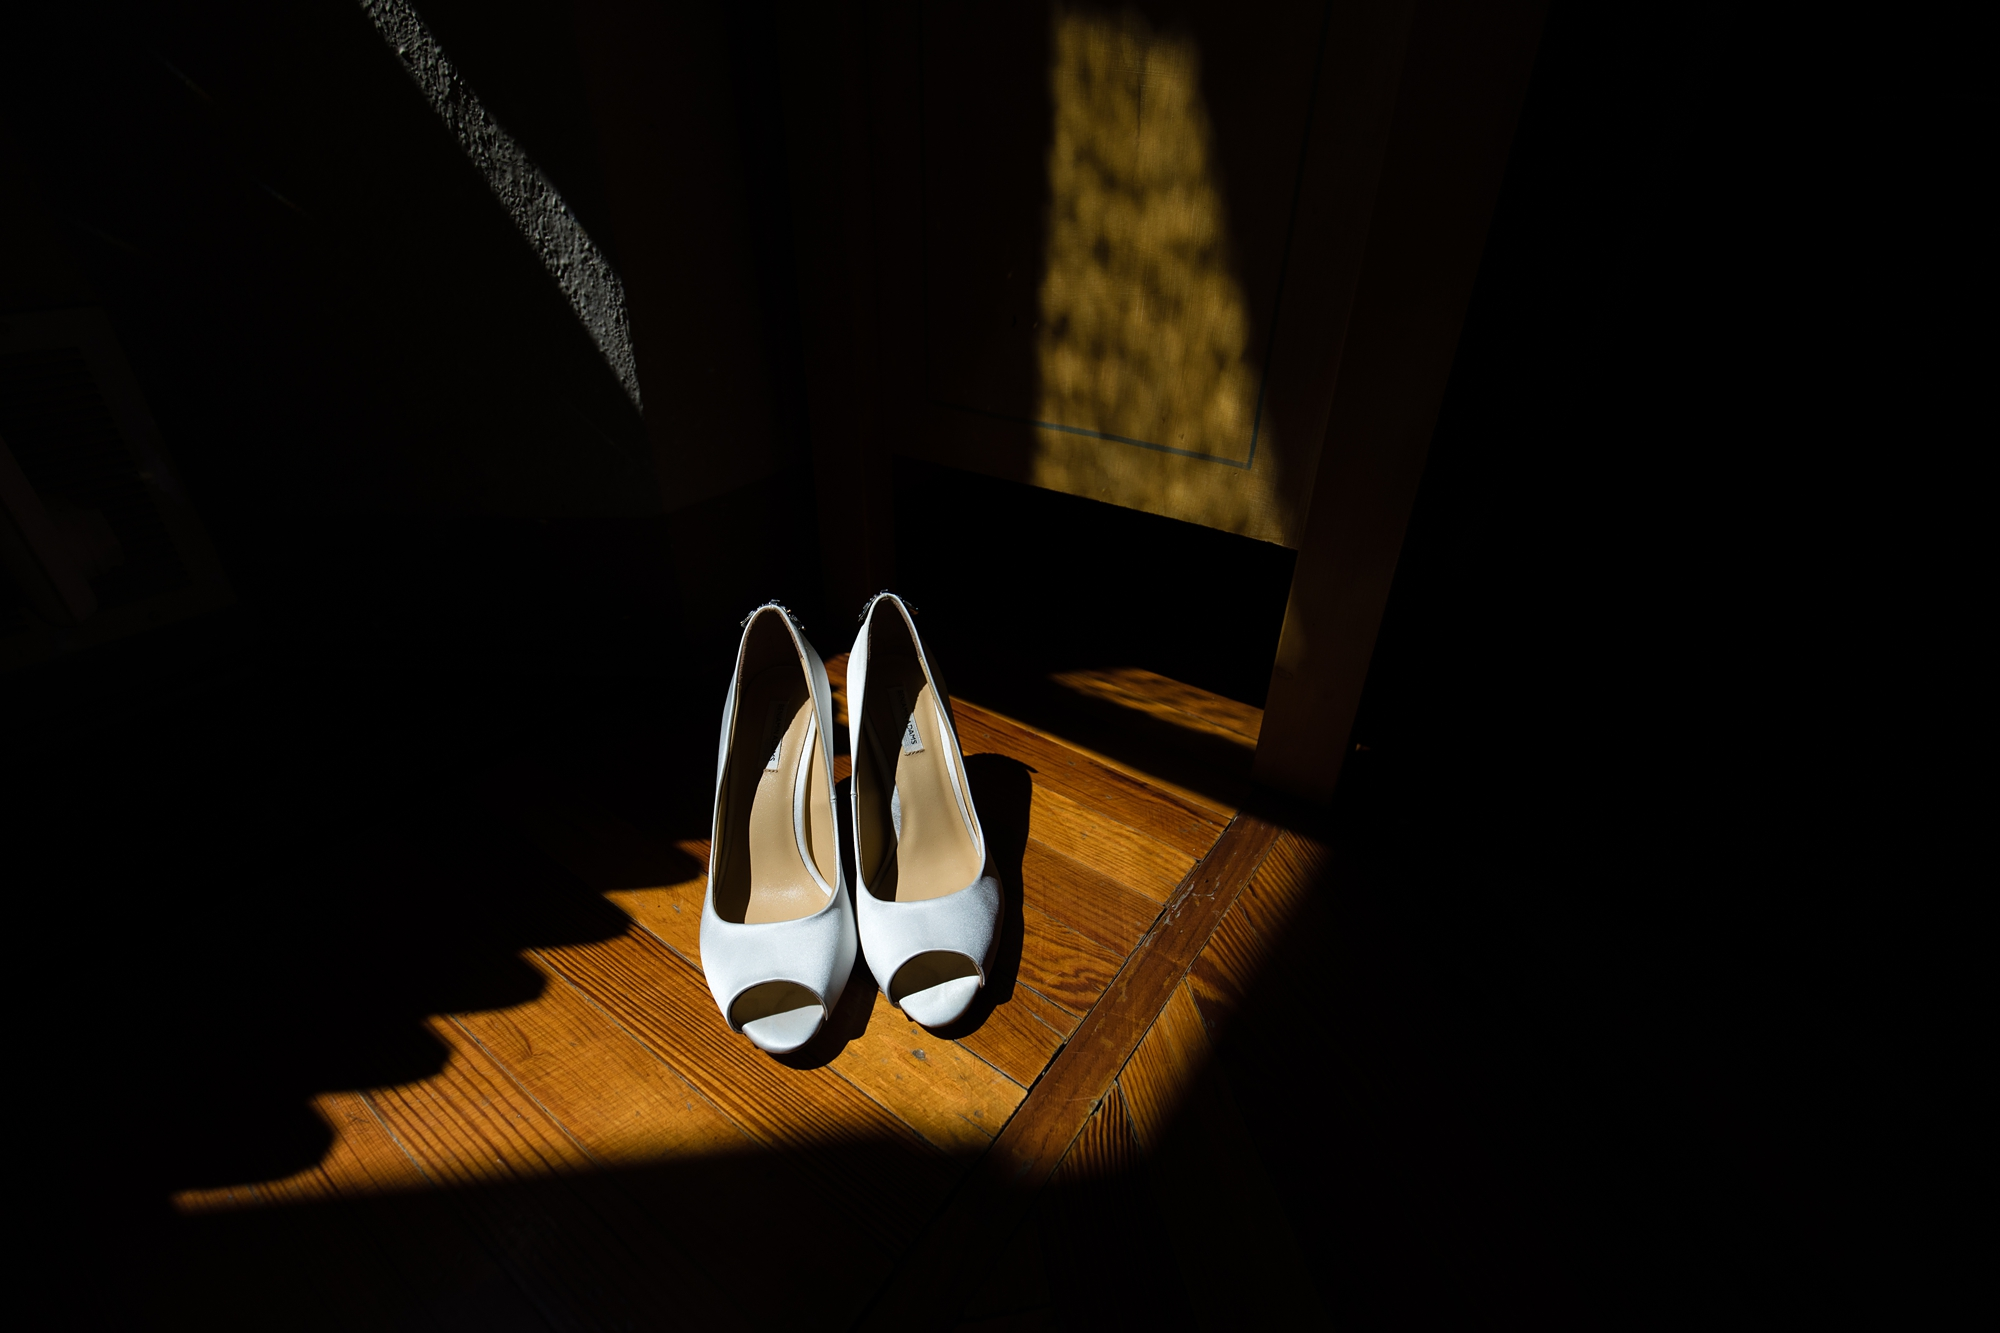 Villa Catignano Siena Wedding Photography wedding shoes in shadow